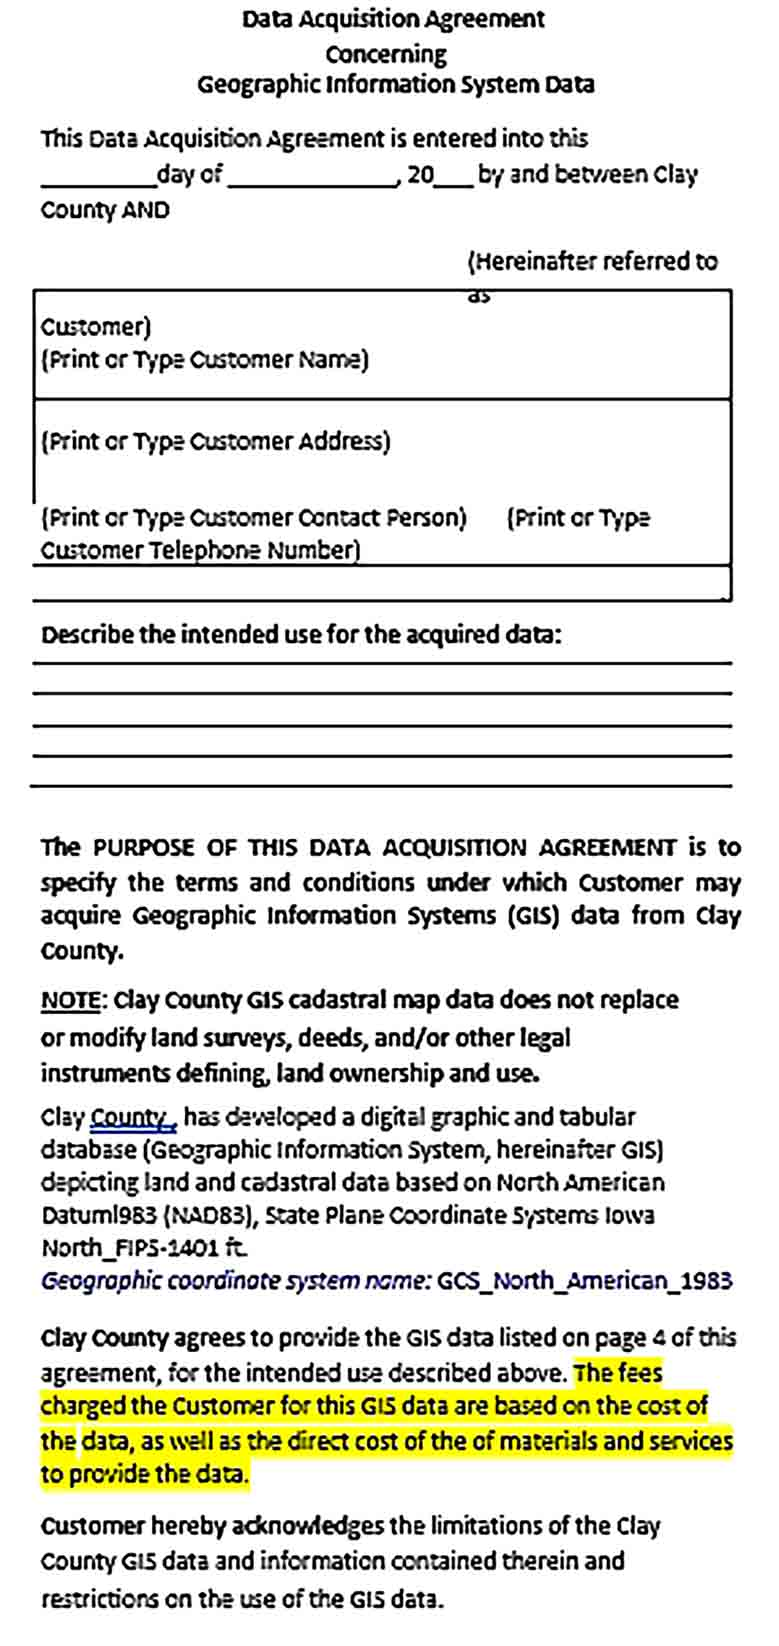 Sample Data Acquisition Agreement